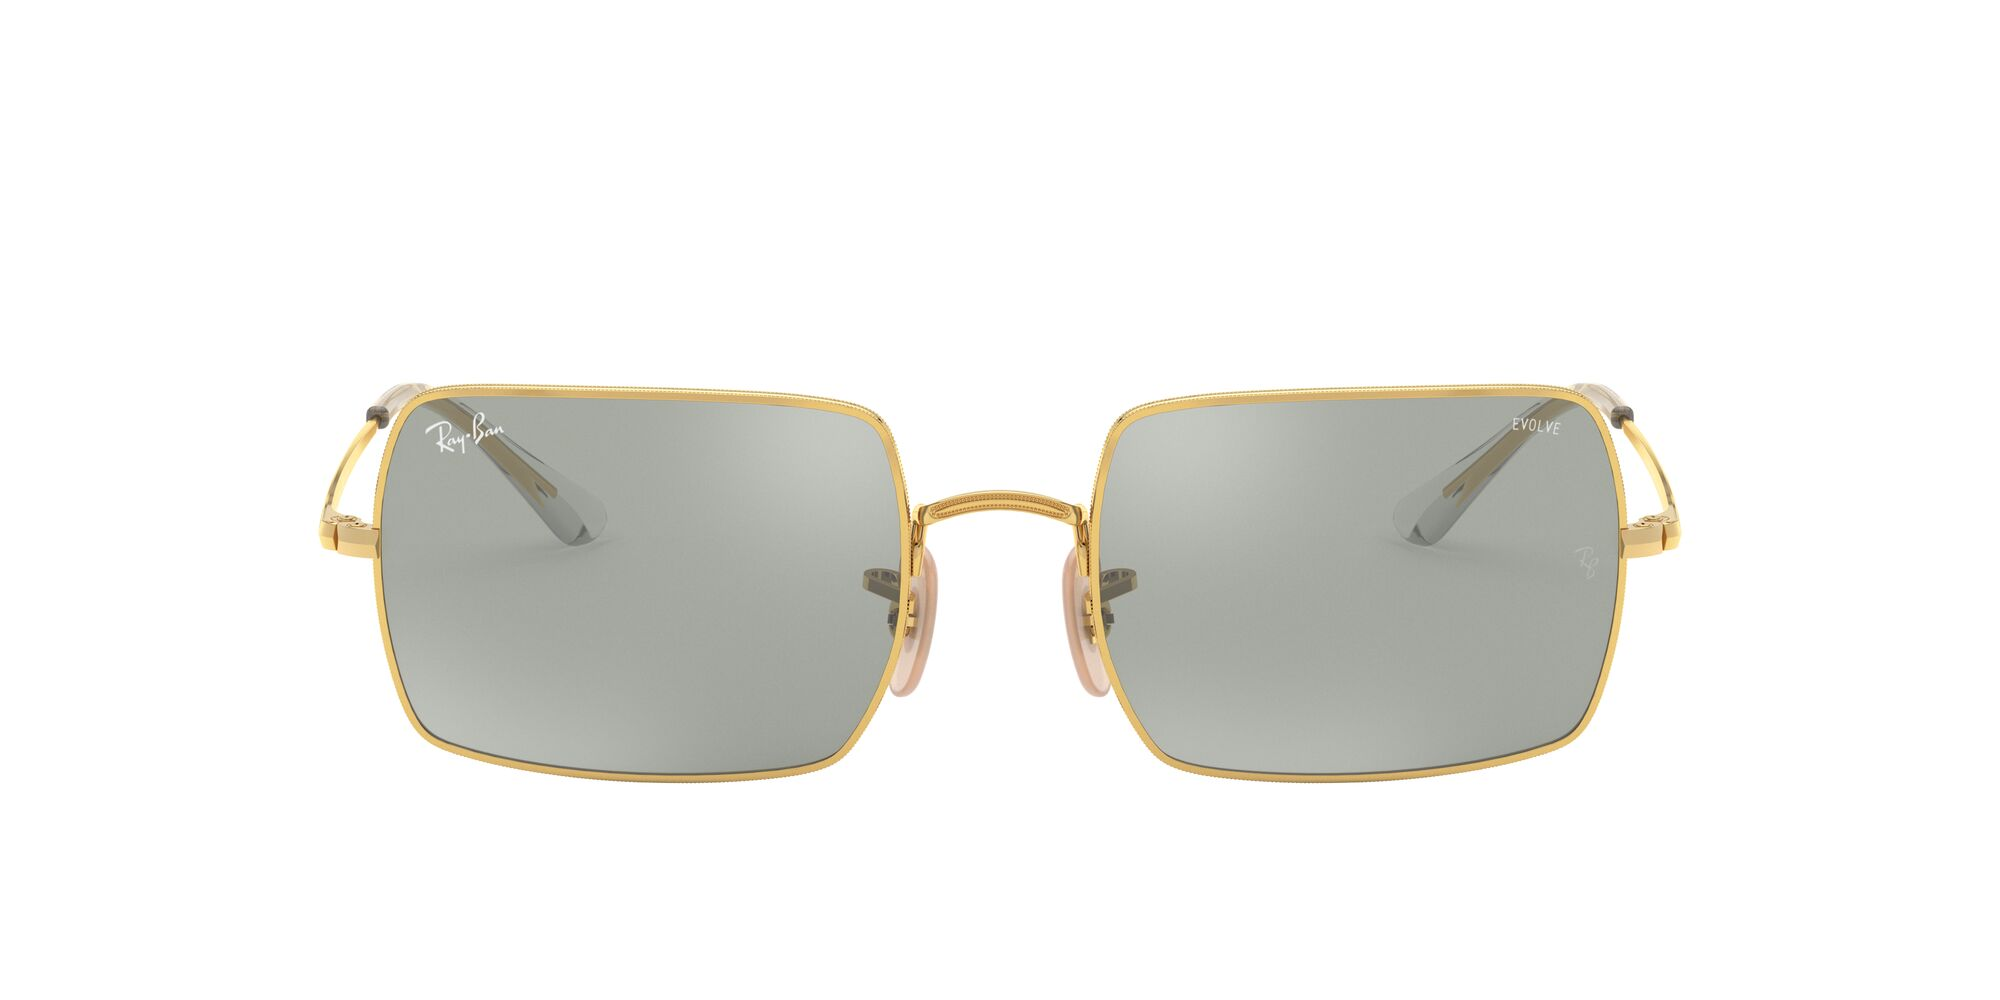 Front Ray-Ban Ray-Ban 0RB1969 001/W3 53/19 Goud/Grijs